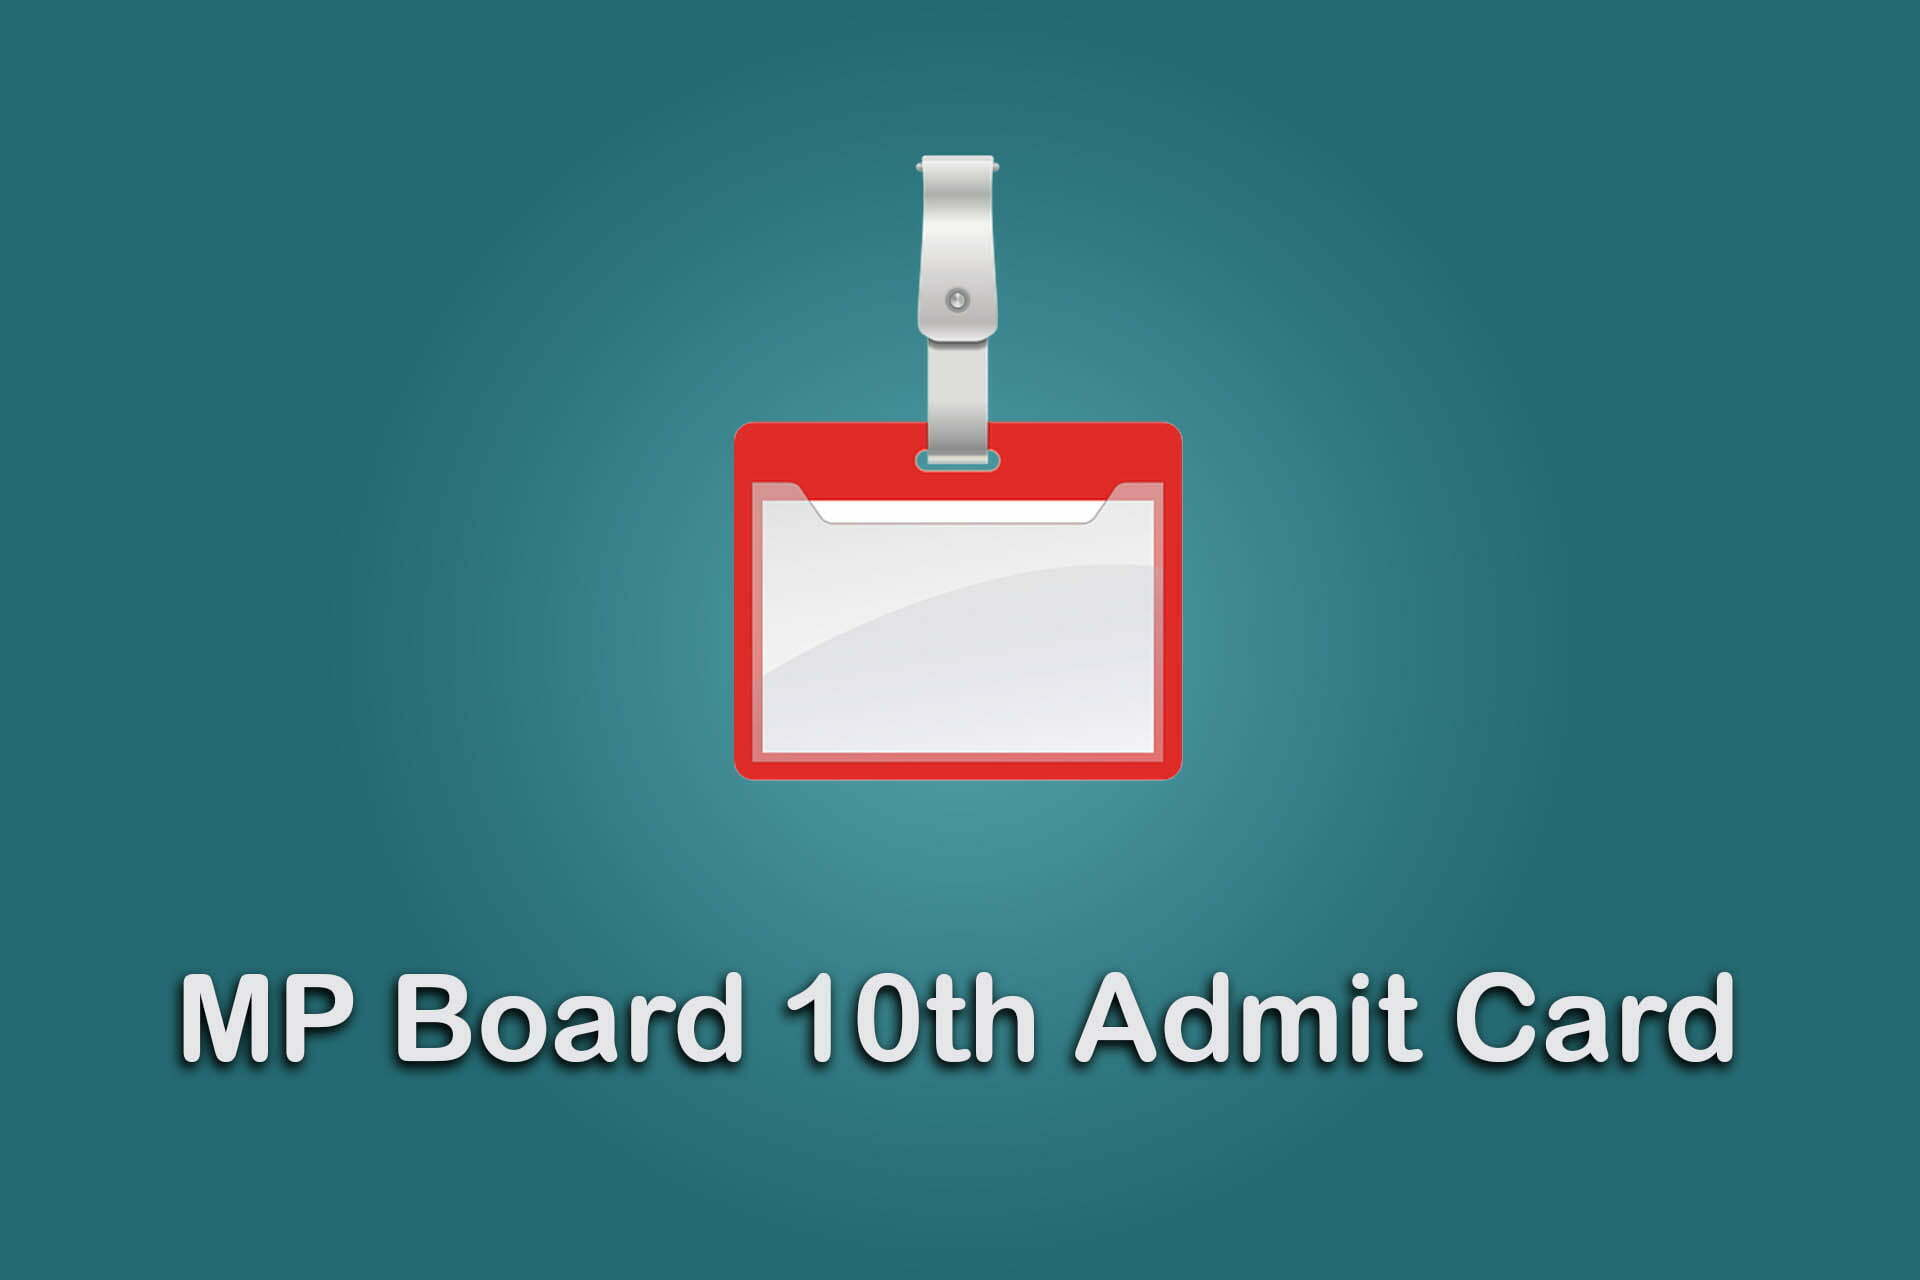 MP Board 10th Admit Card